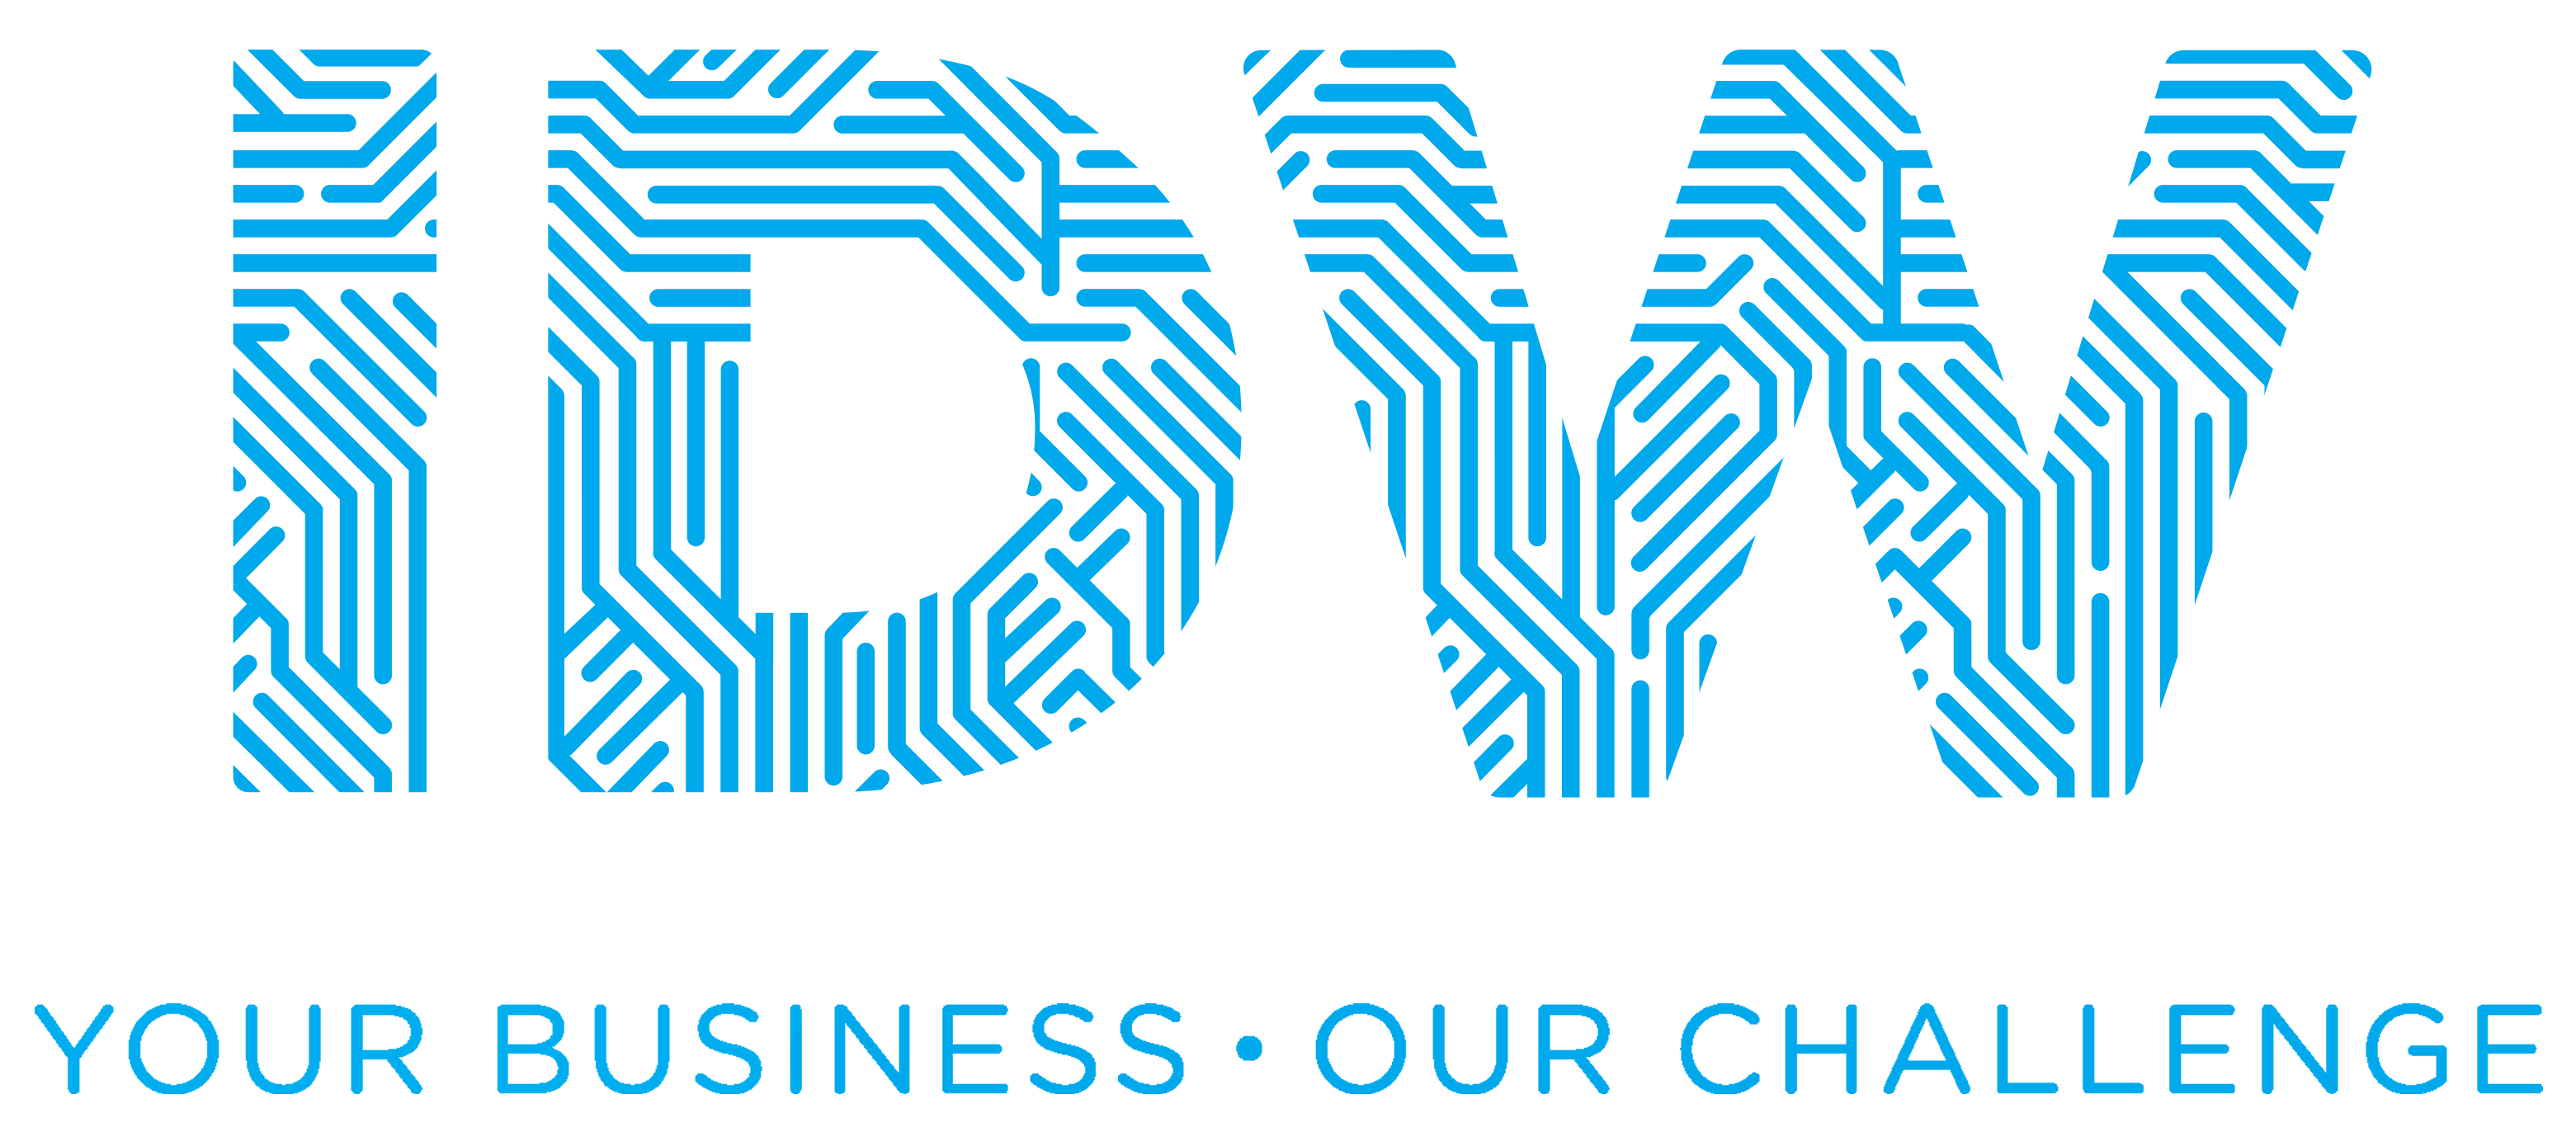 Your Business, Our Challenge - IDW